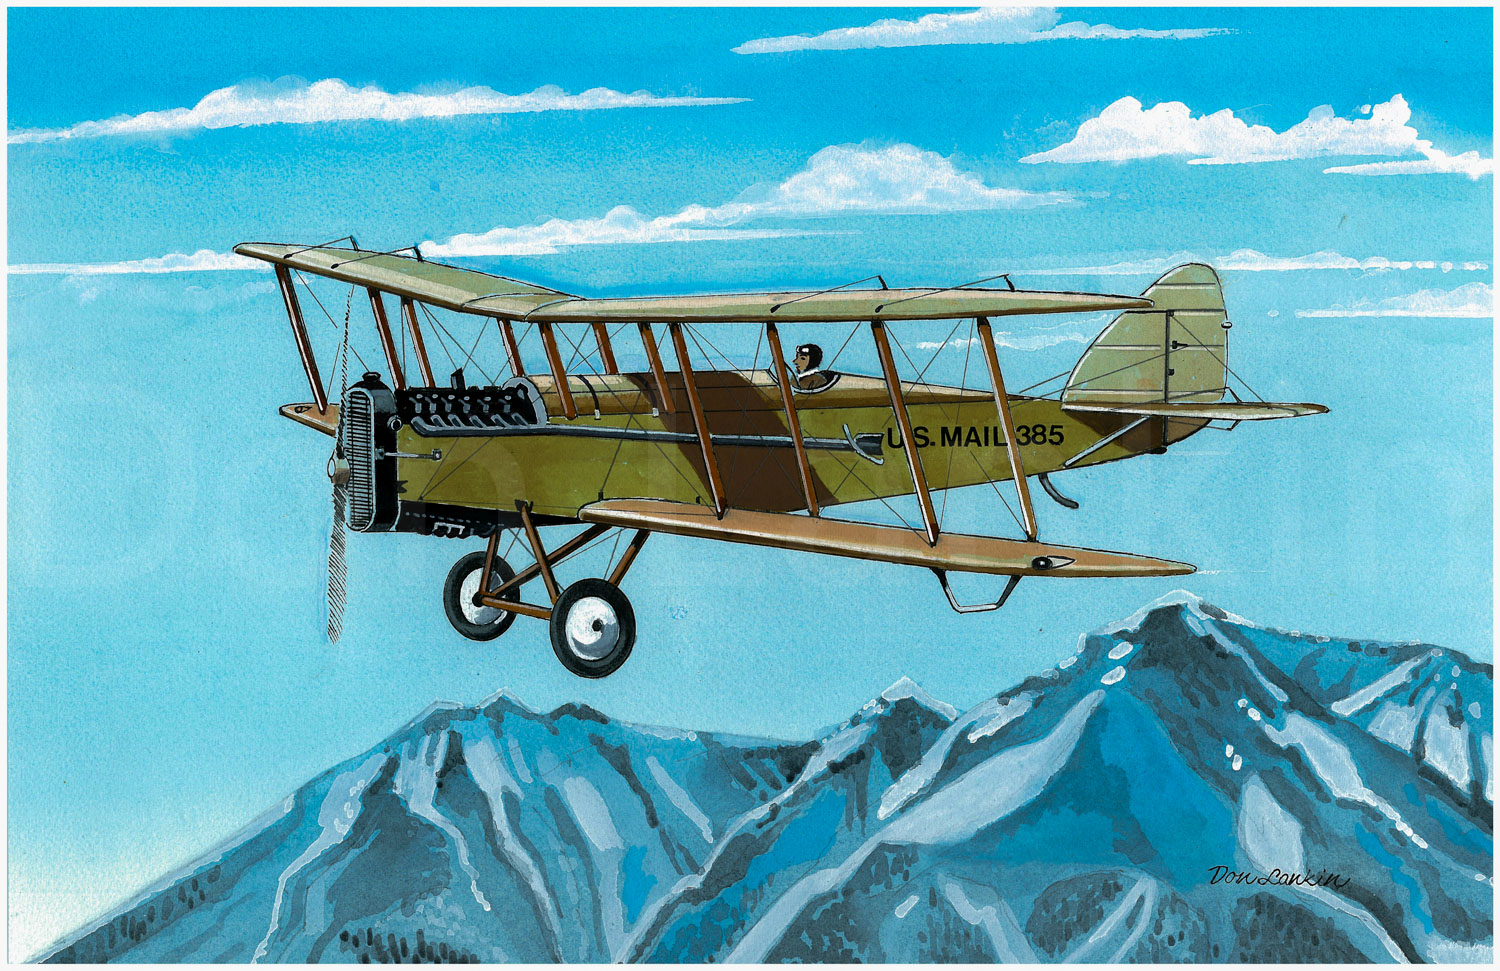 The de Havilland DH-4 joined the Air Mail Service in 1918.